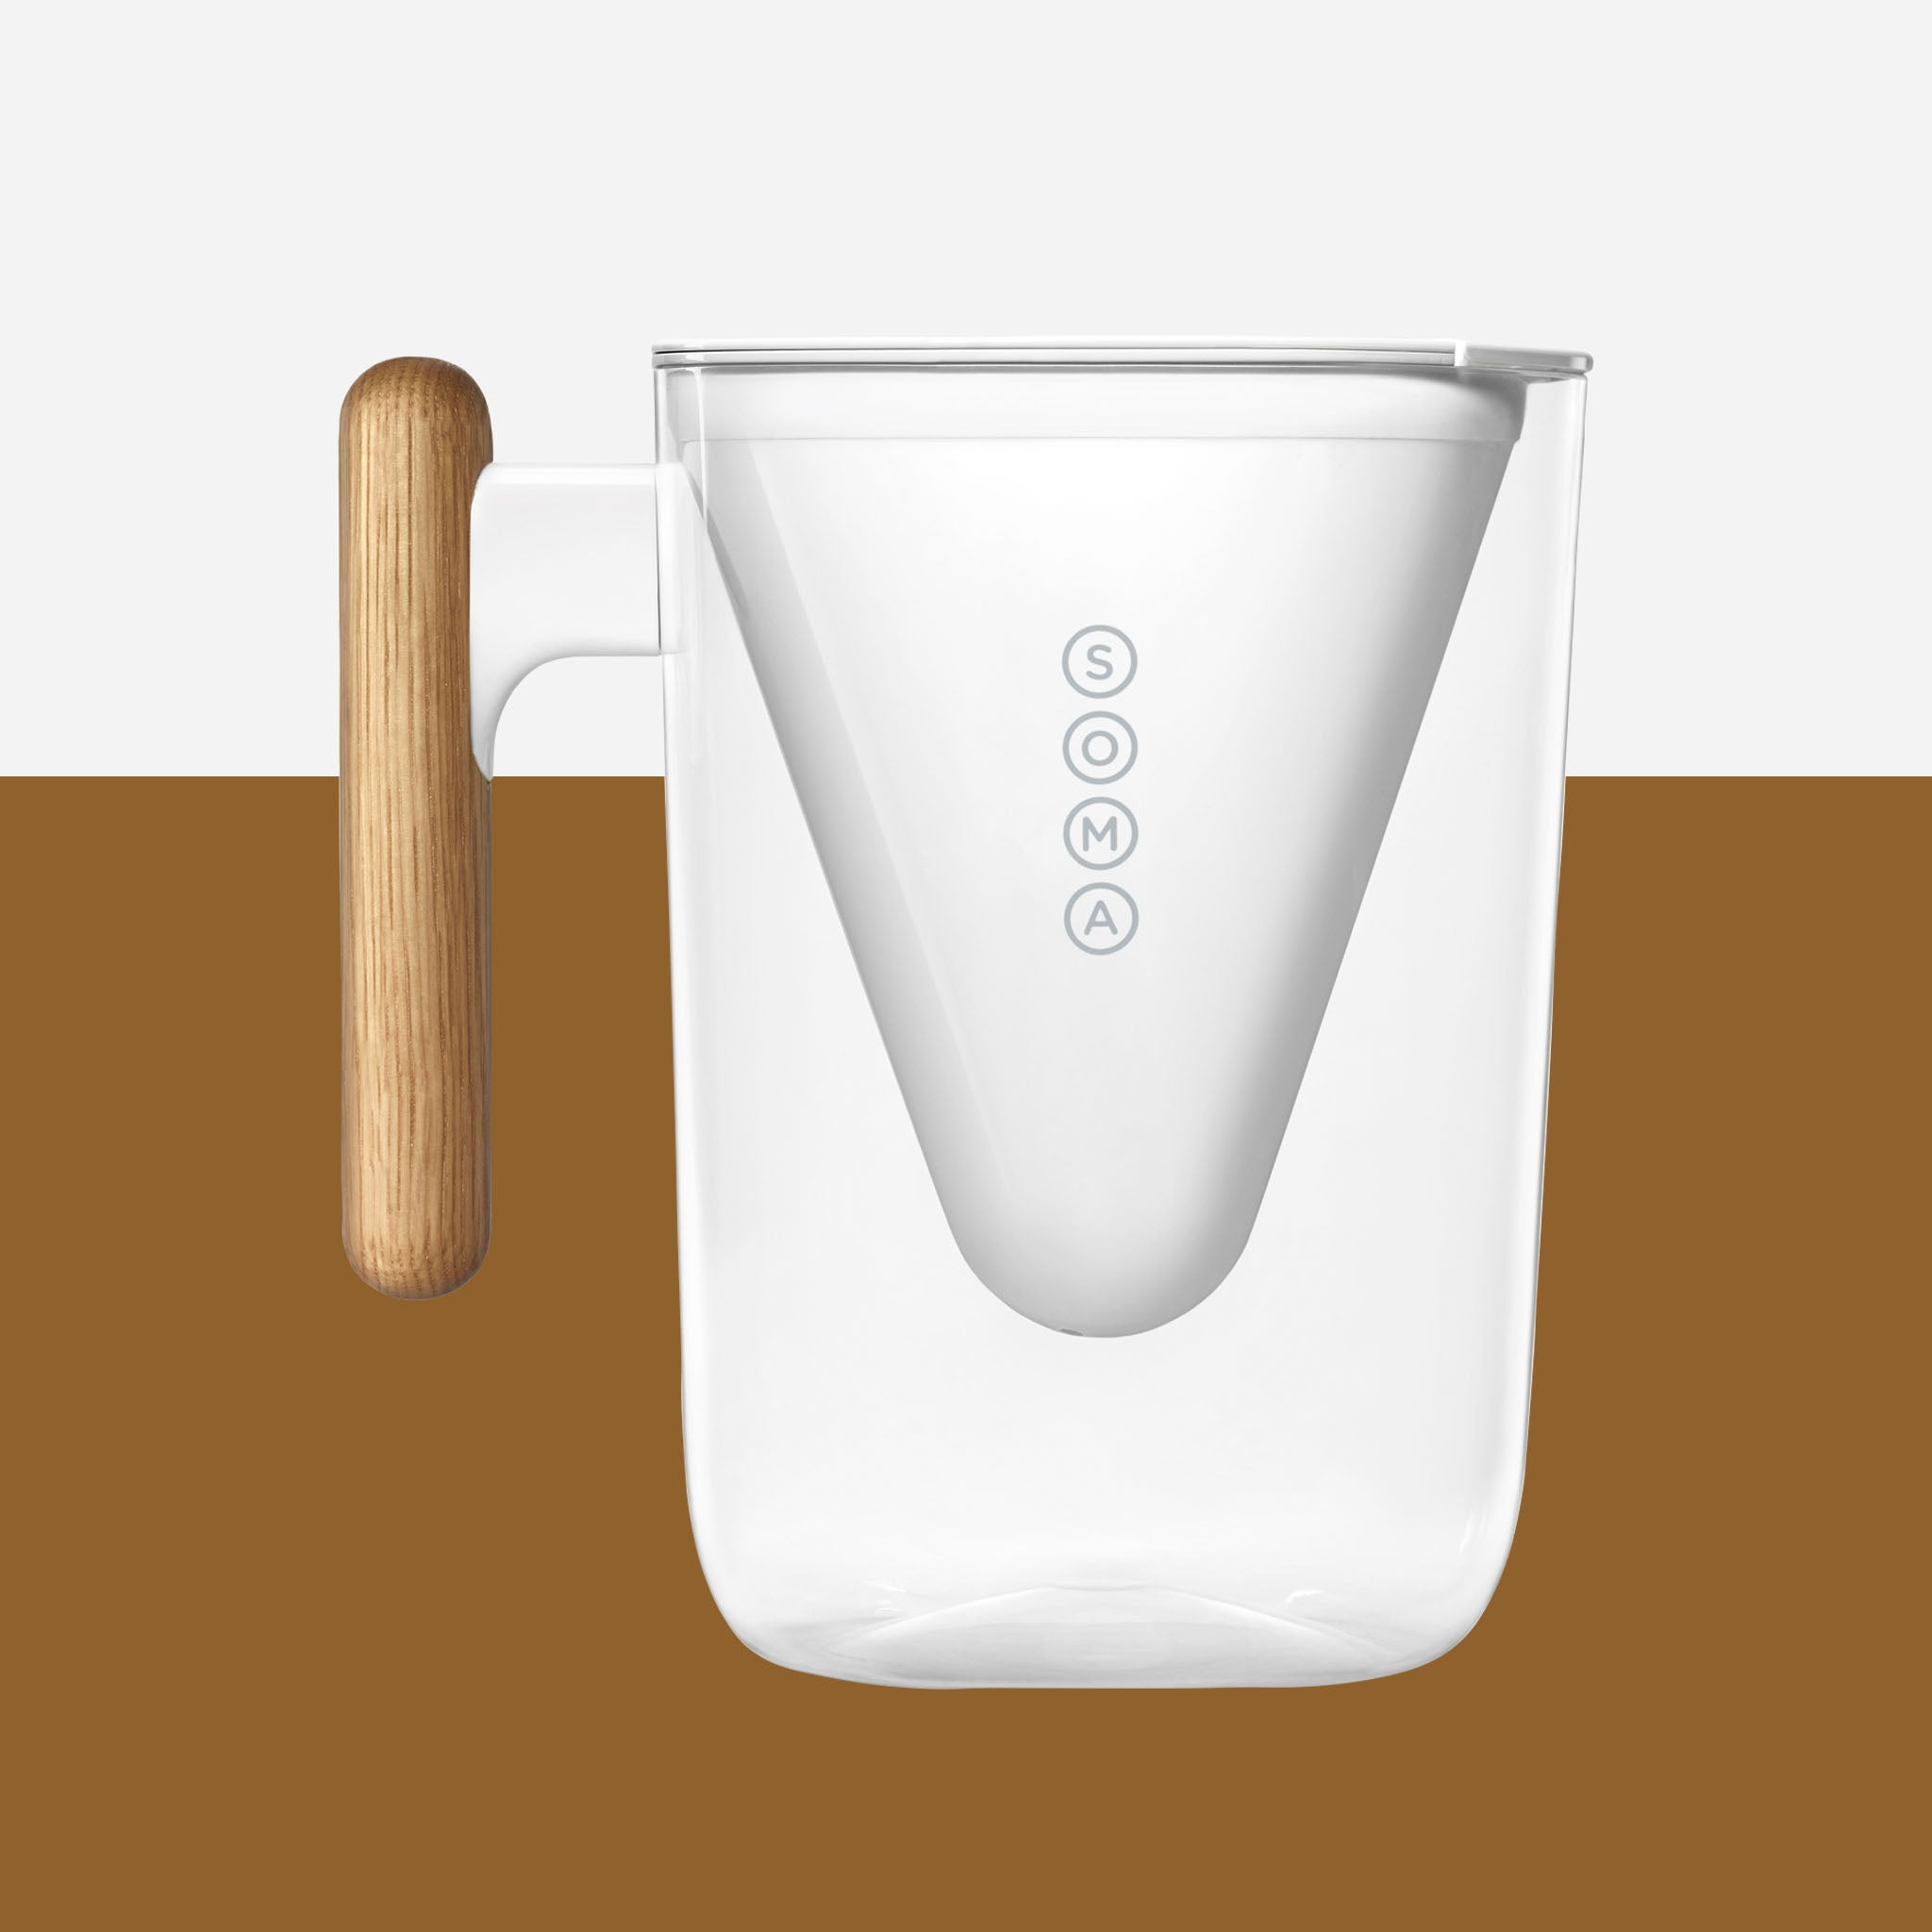 Soma Water Filter Pitcher - 6 Cup - White Space Home